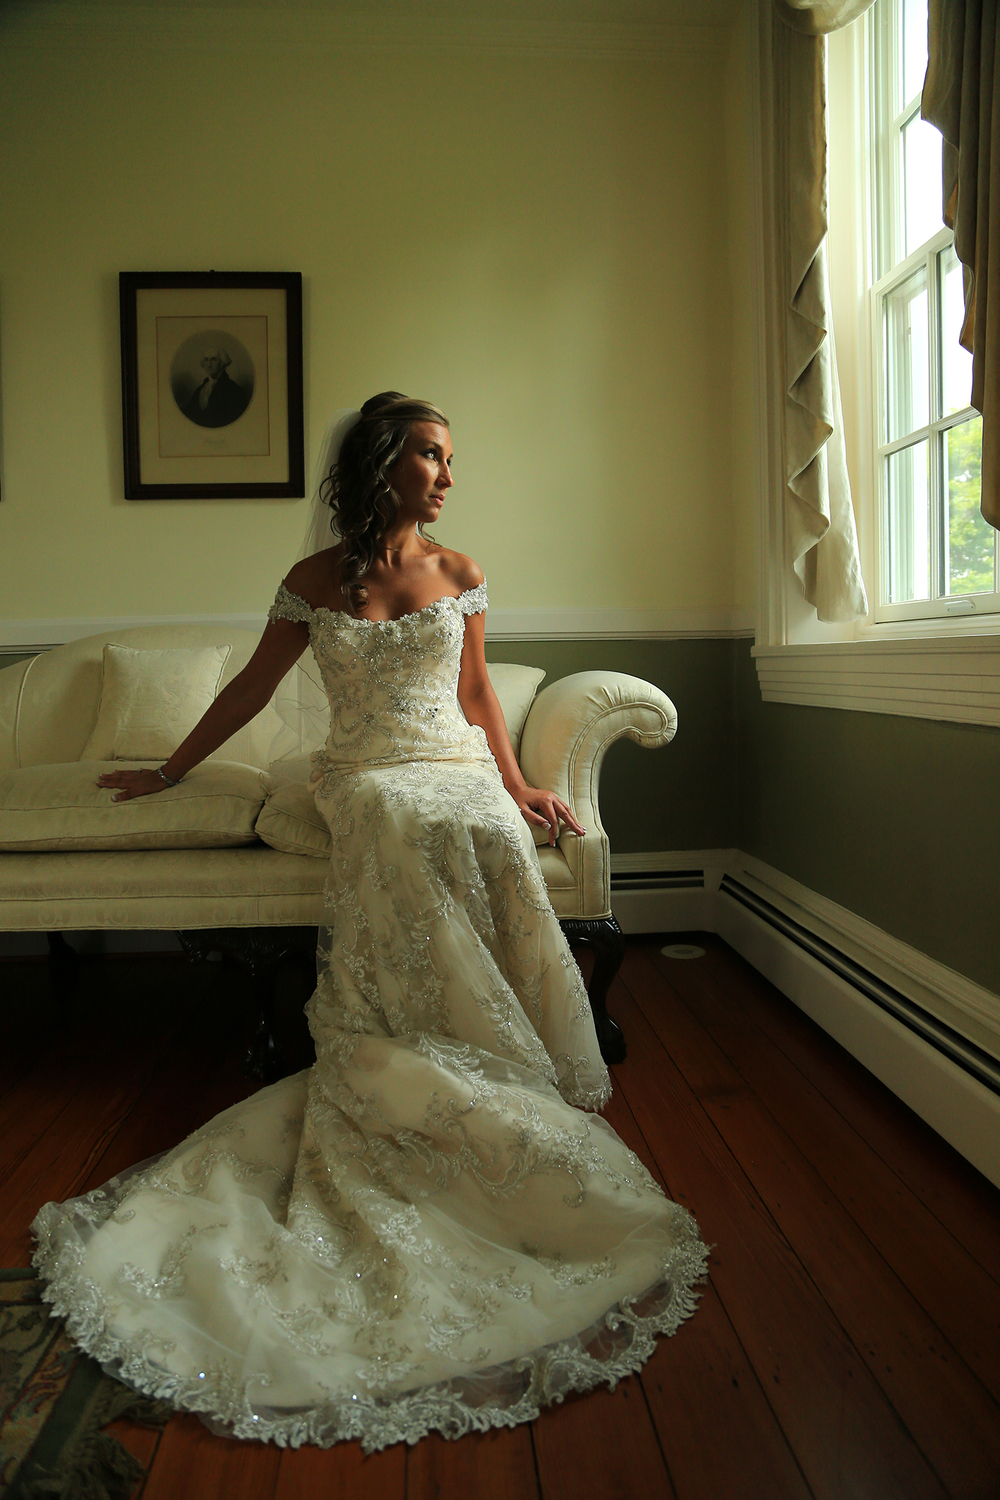 Bridal Portrait With Window Chesapeake City MD | Frederick Maryland Wedding Photographer